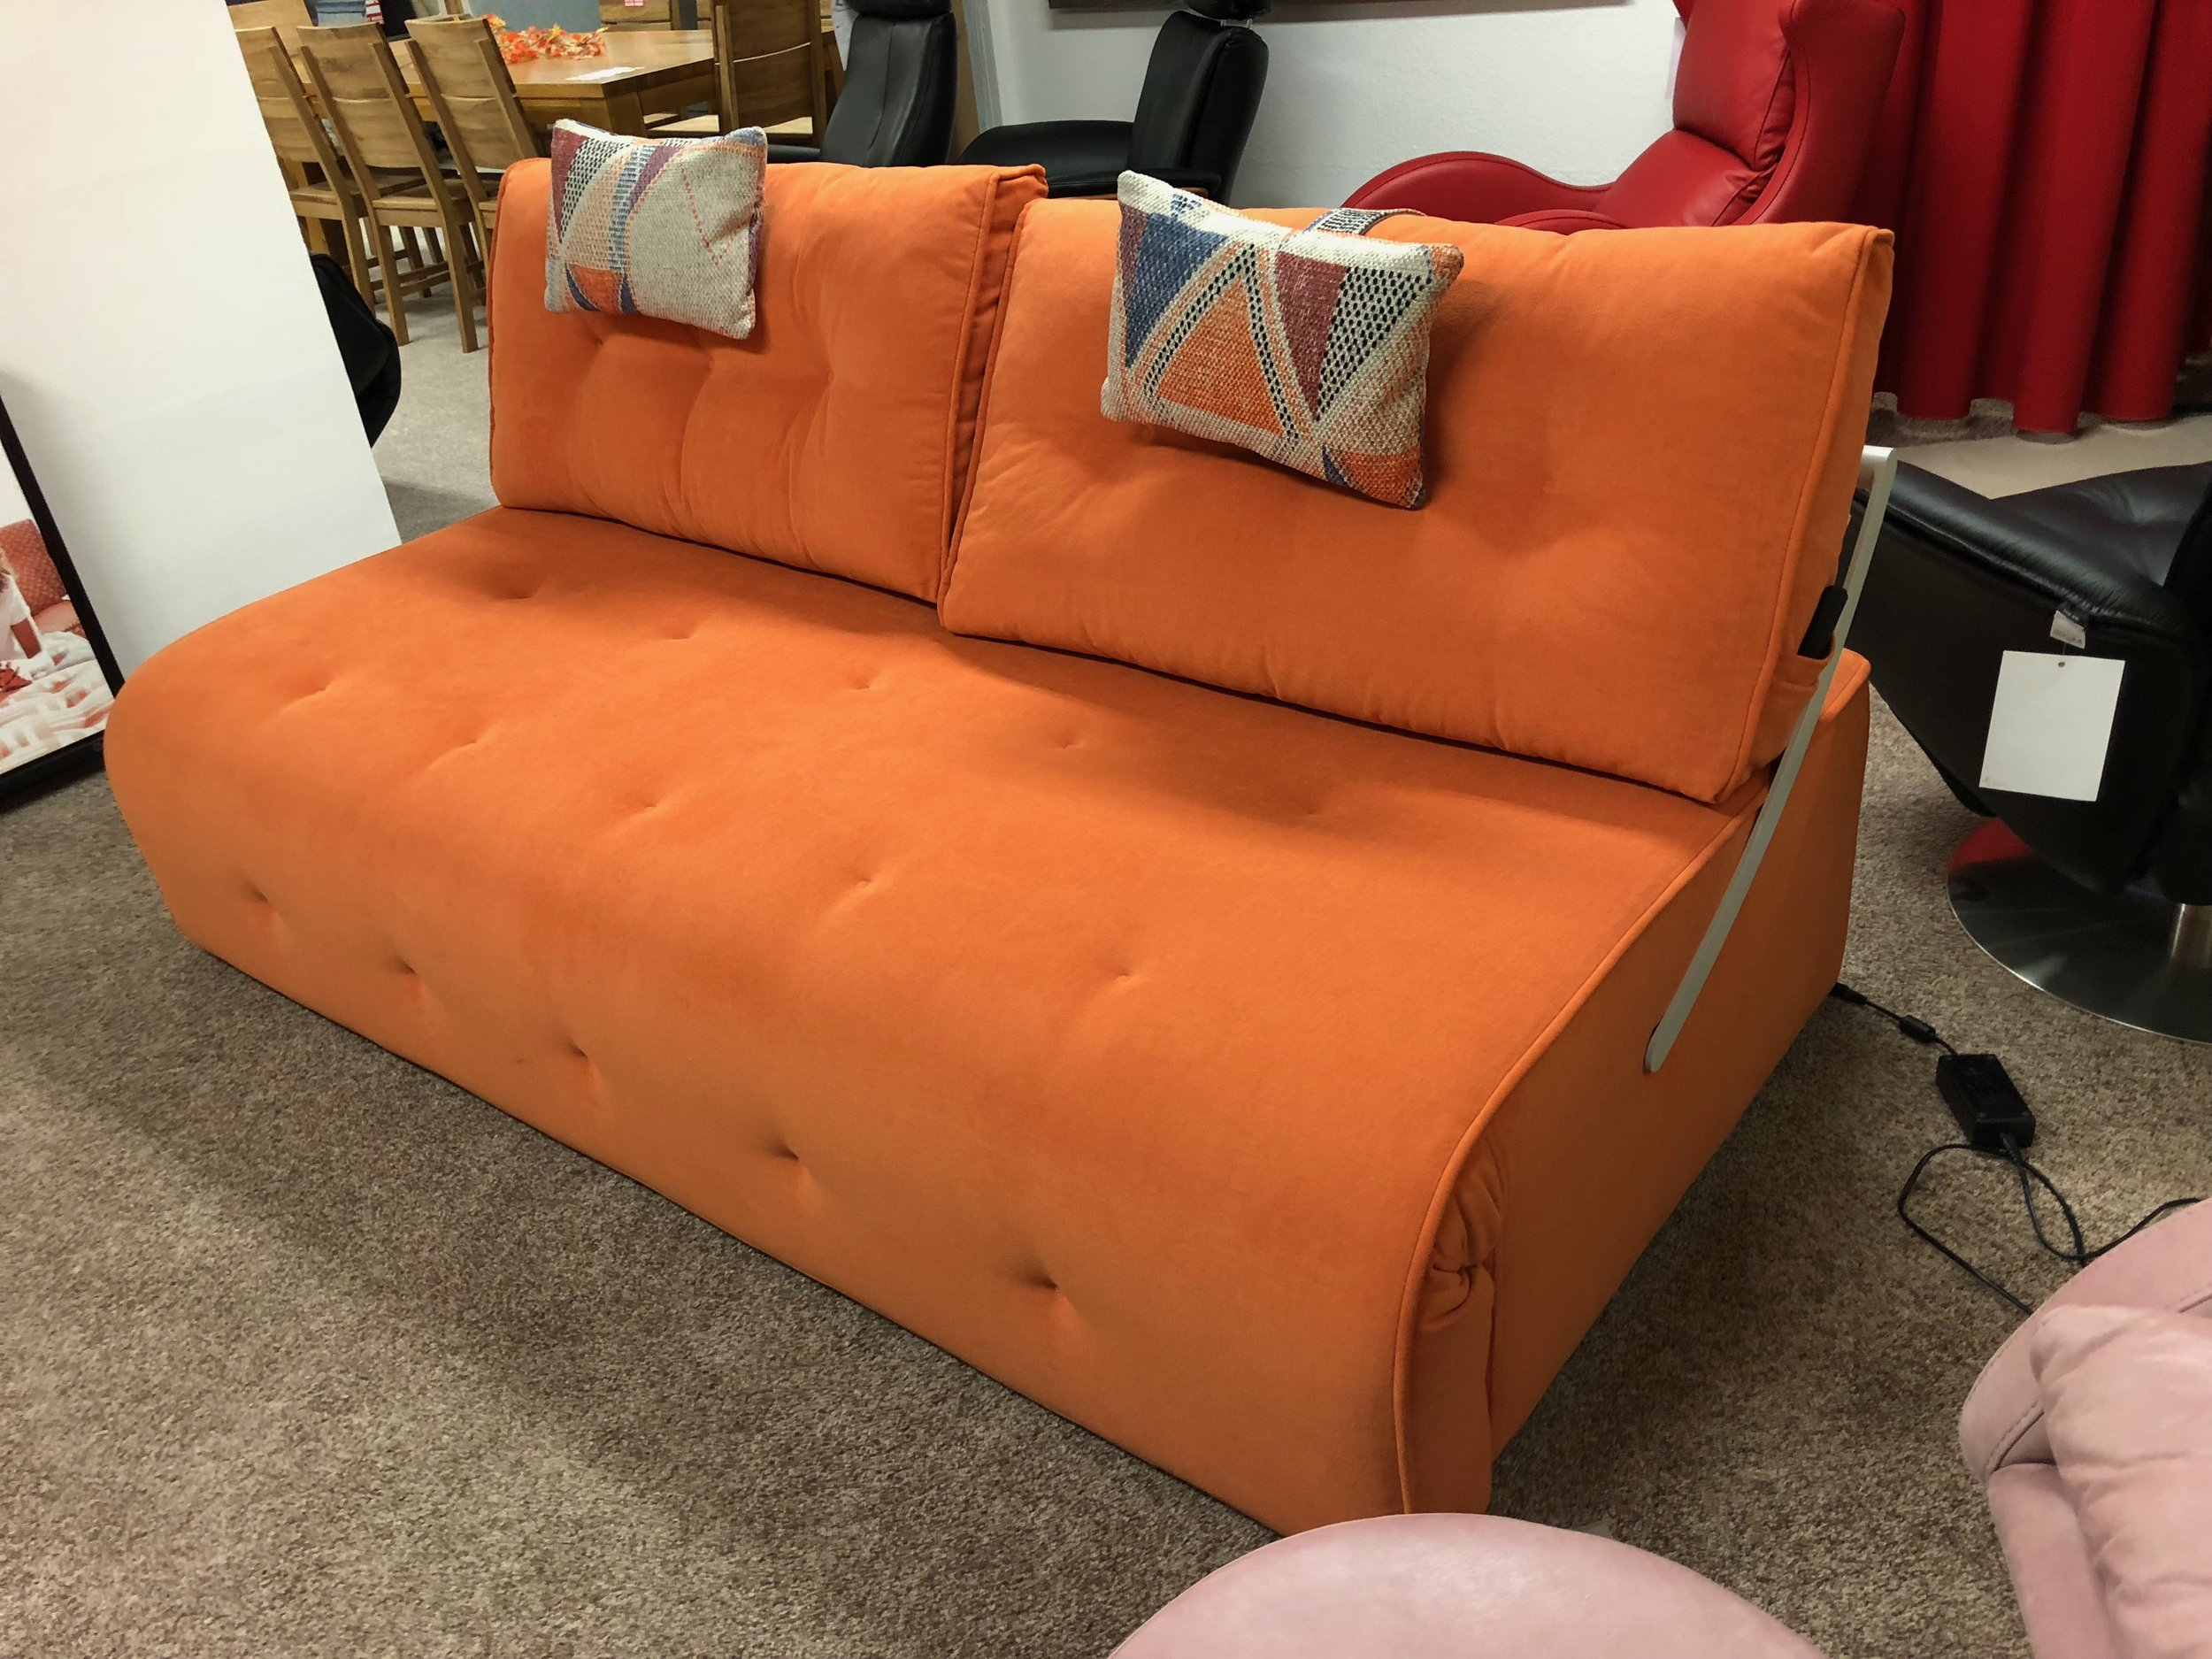 Schlafsofa orange elektrisch